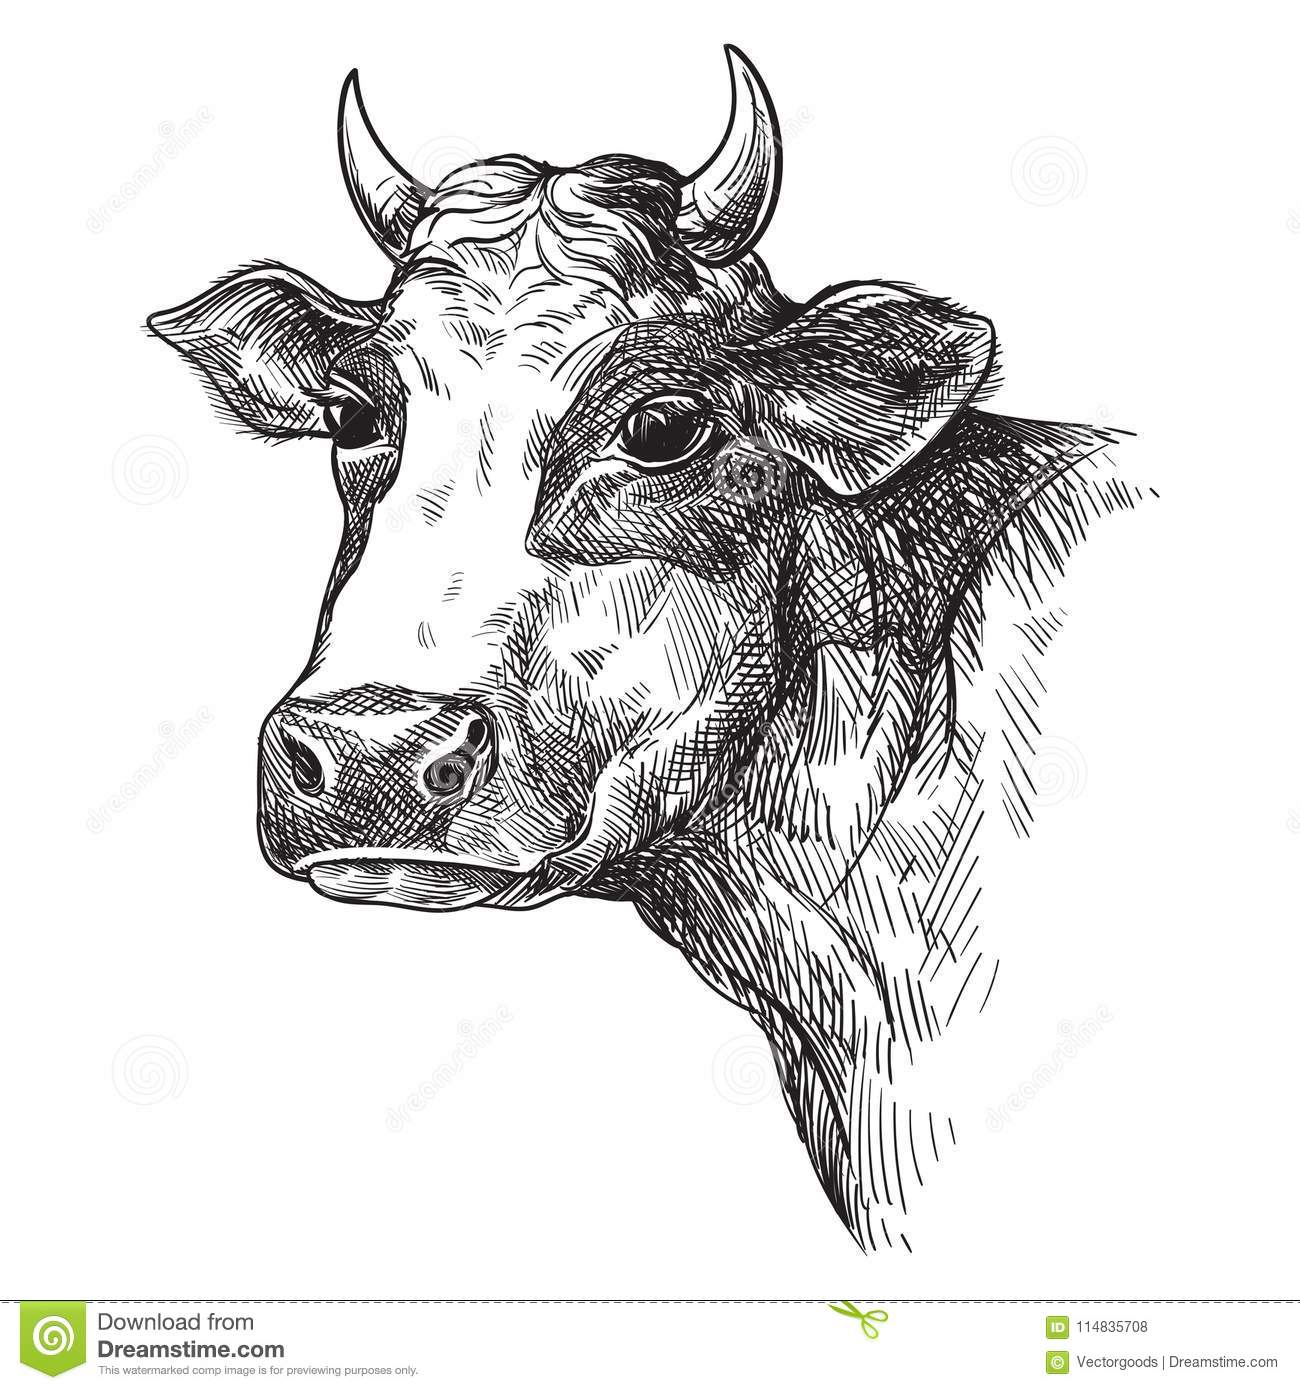 Cow Face Easy To Draw - Cattle Face Drawing